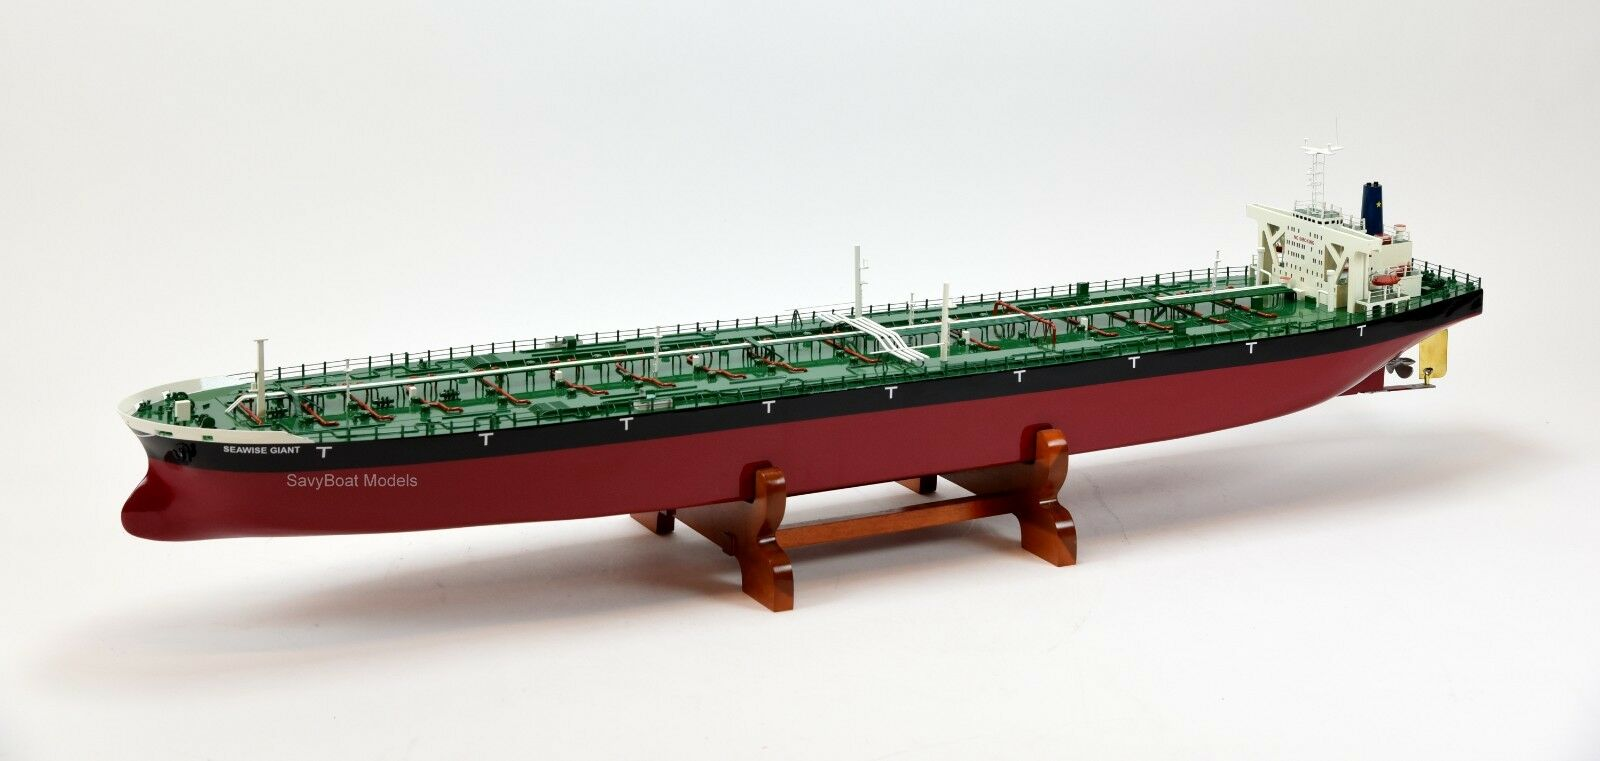 Seawise Giant ULCC Supertanker Wooden Ship Model 51  RC Ready Scale 1 350